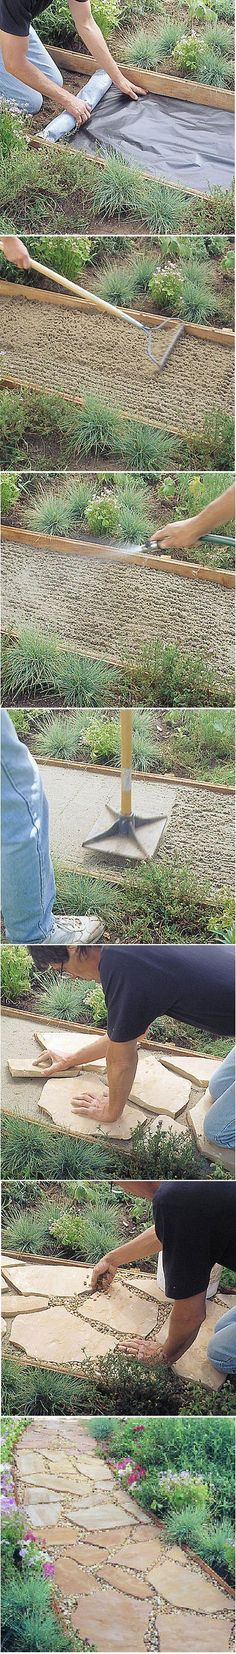 The perfect addition to your own home zen garden: a Flagstone Path Tutorial. SA- I would use this technique without the large stone for a path to a zen garden specifically. Backyard Projects, Outdoor Projects, Garden Projects, Backyard Ideas, Pool Ideas, Garden Ideas, Backyard Games, Outdoor Ideas, Garden Paths